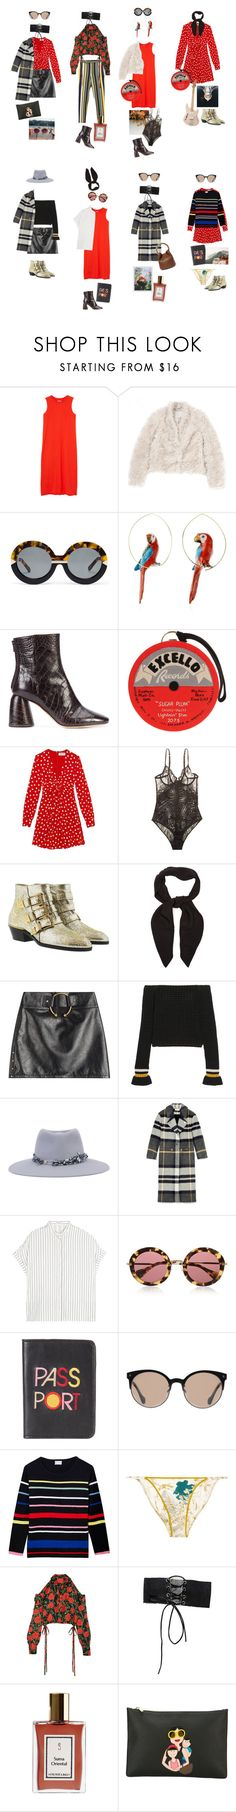 """""""Untitled #2214"""" by duumbblond ❤ liked on Polyvore featuring Monki, STELLA McCARTNEY, Karen Walker, Nach, E L L E R Y, Olympia Le-Tan, Yves Saint Laurent, La Perla, Chloé and Anthony Vaccarello"""